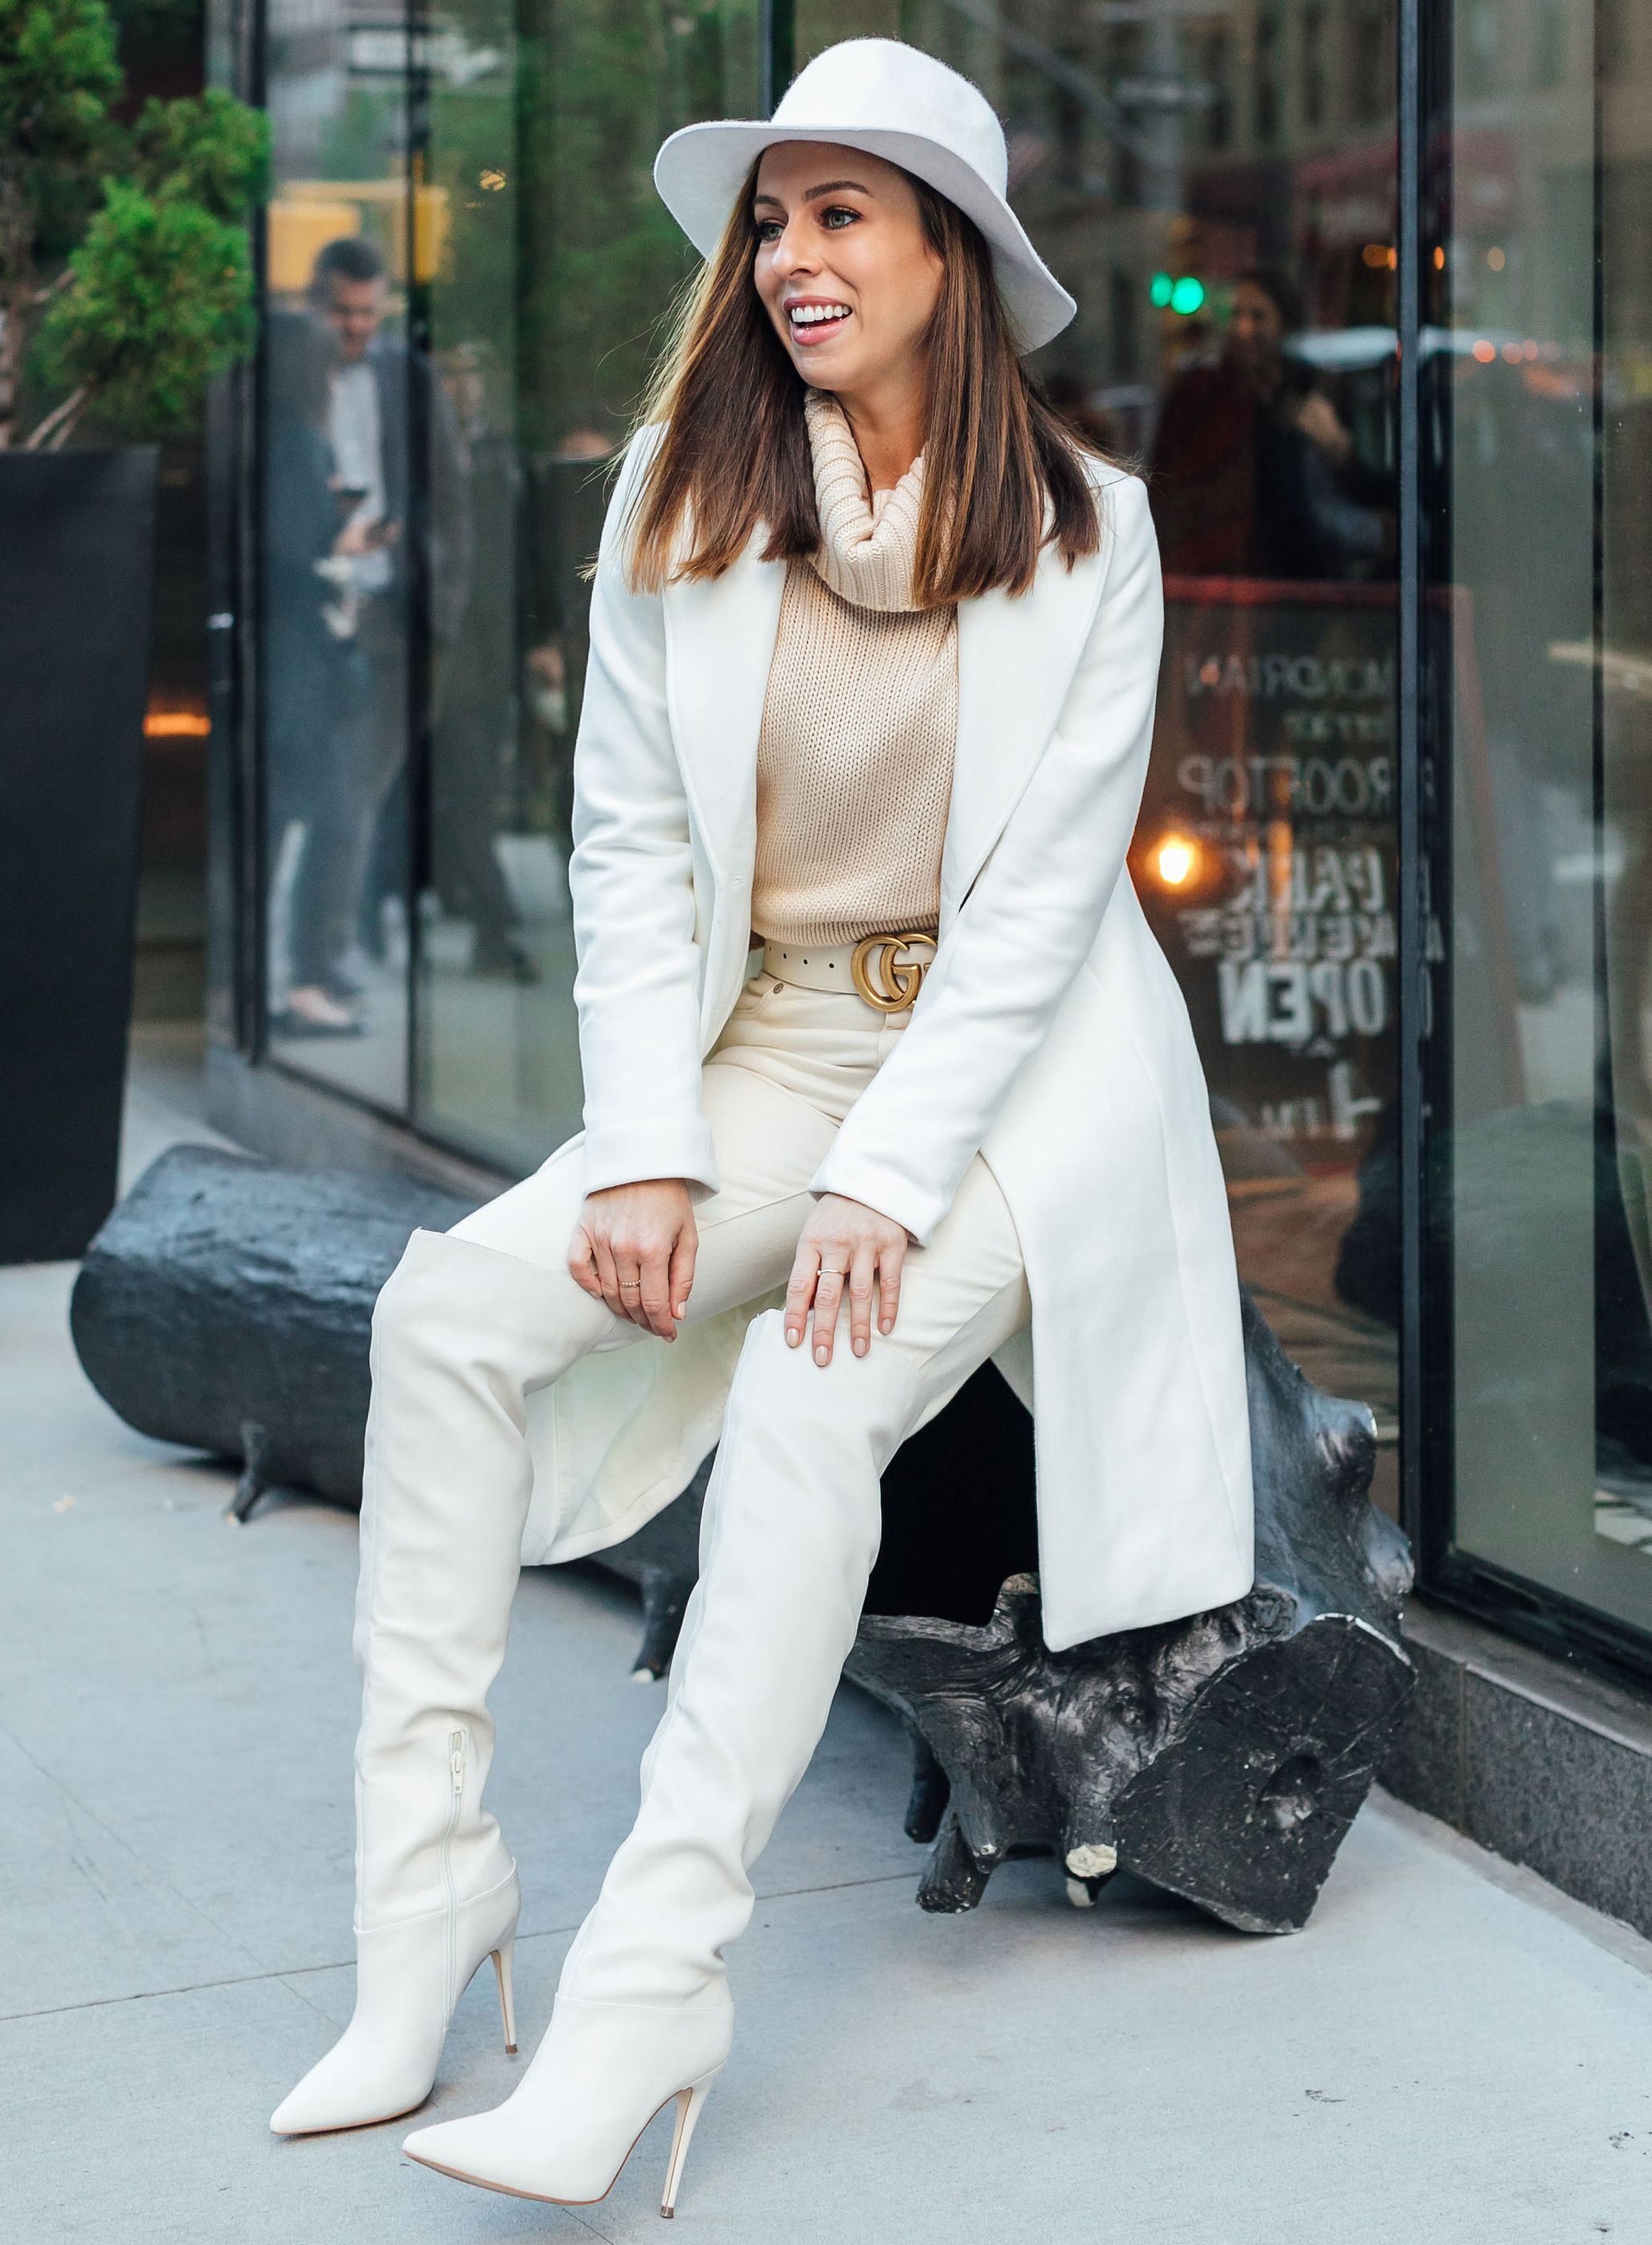 95daeb26c9d8 Sydne Style shows how to wear winter white with guess over the knee boots  #coats